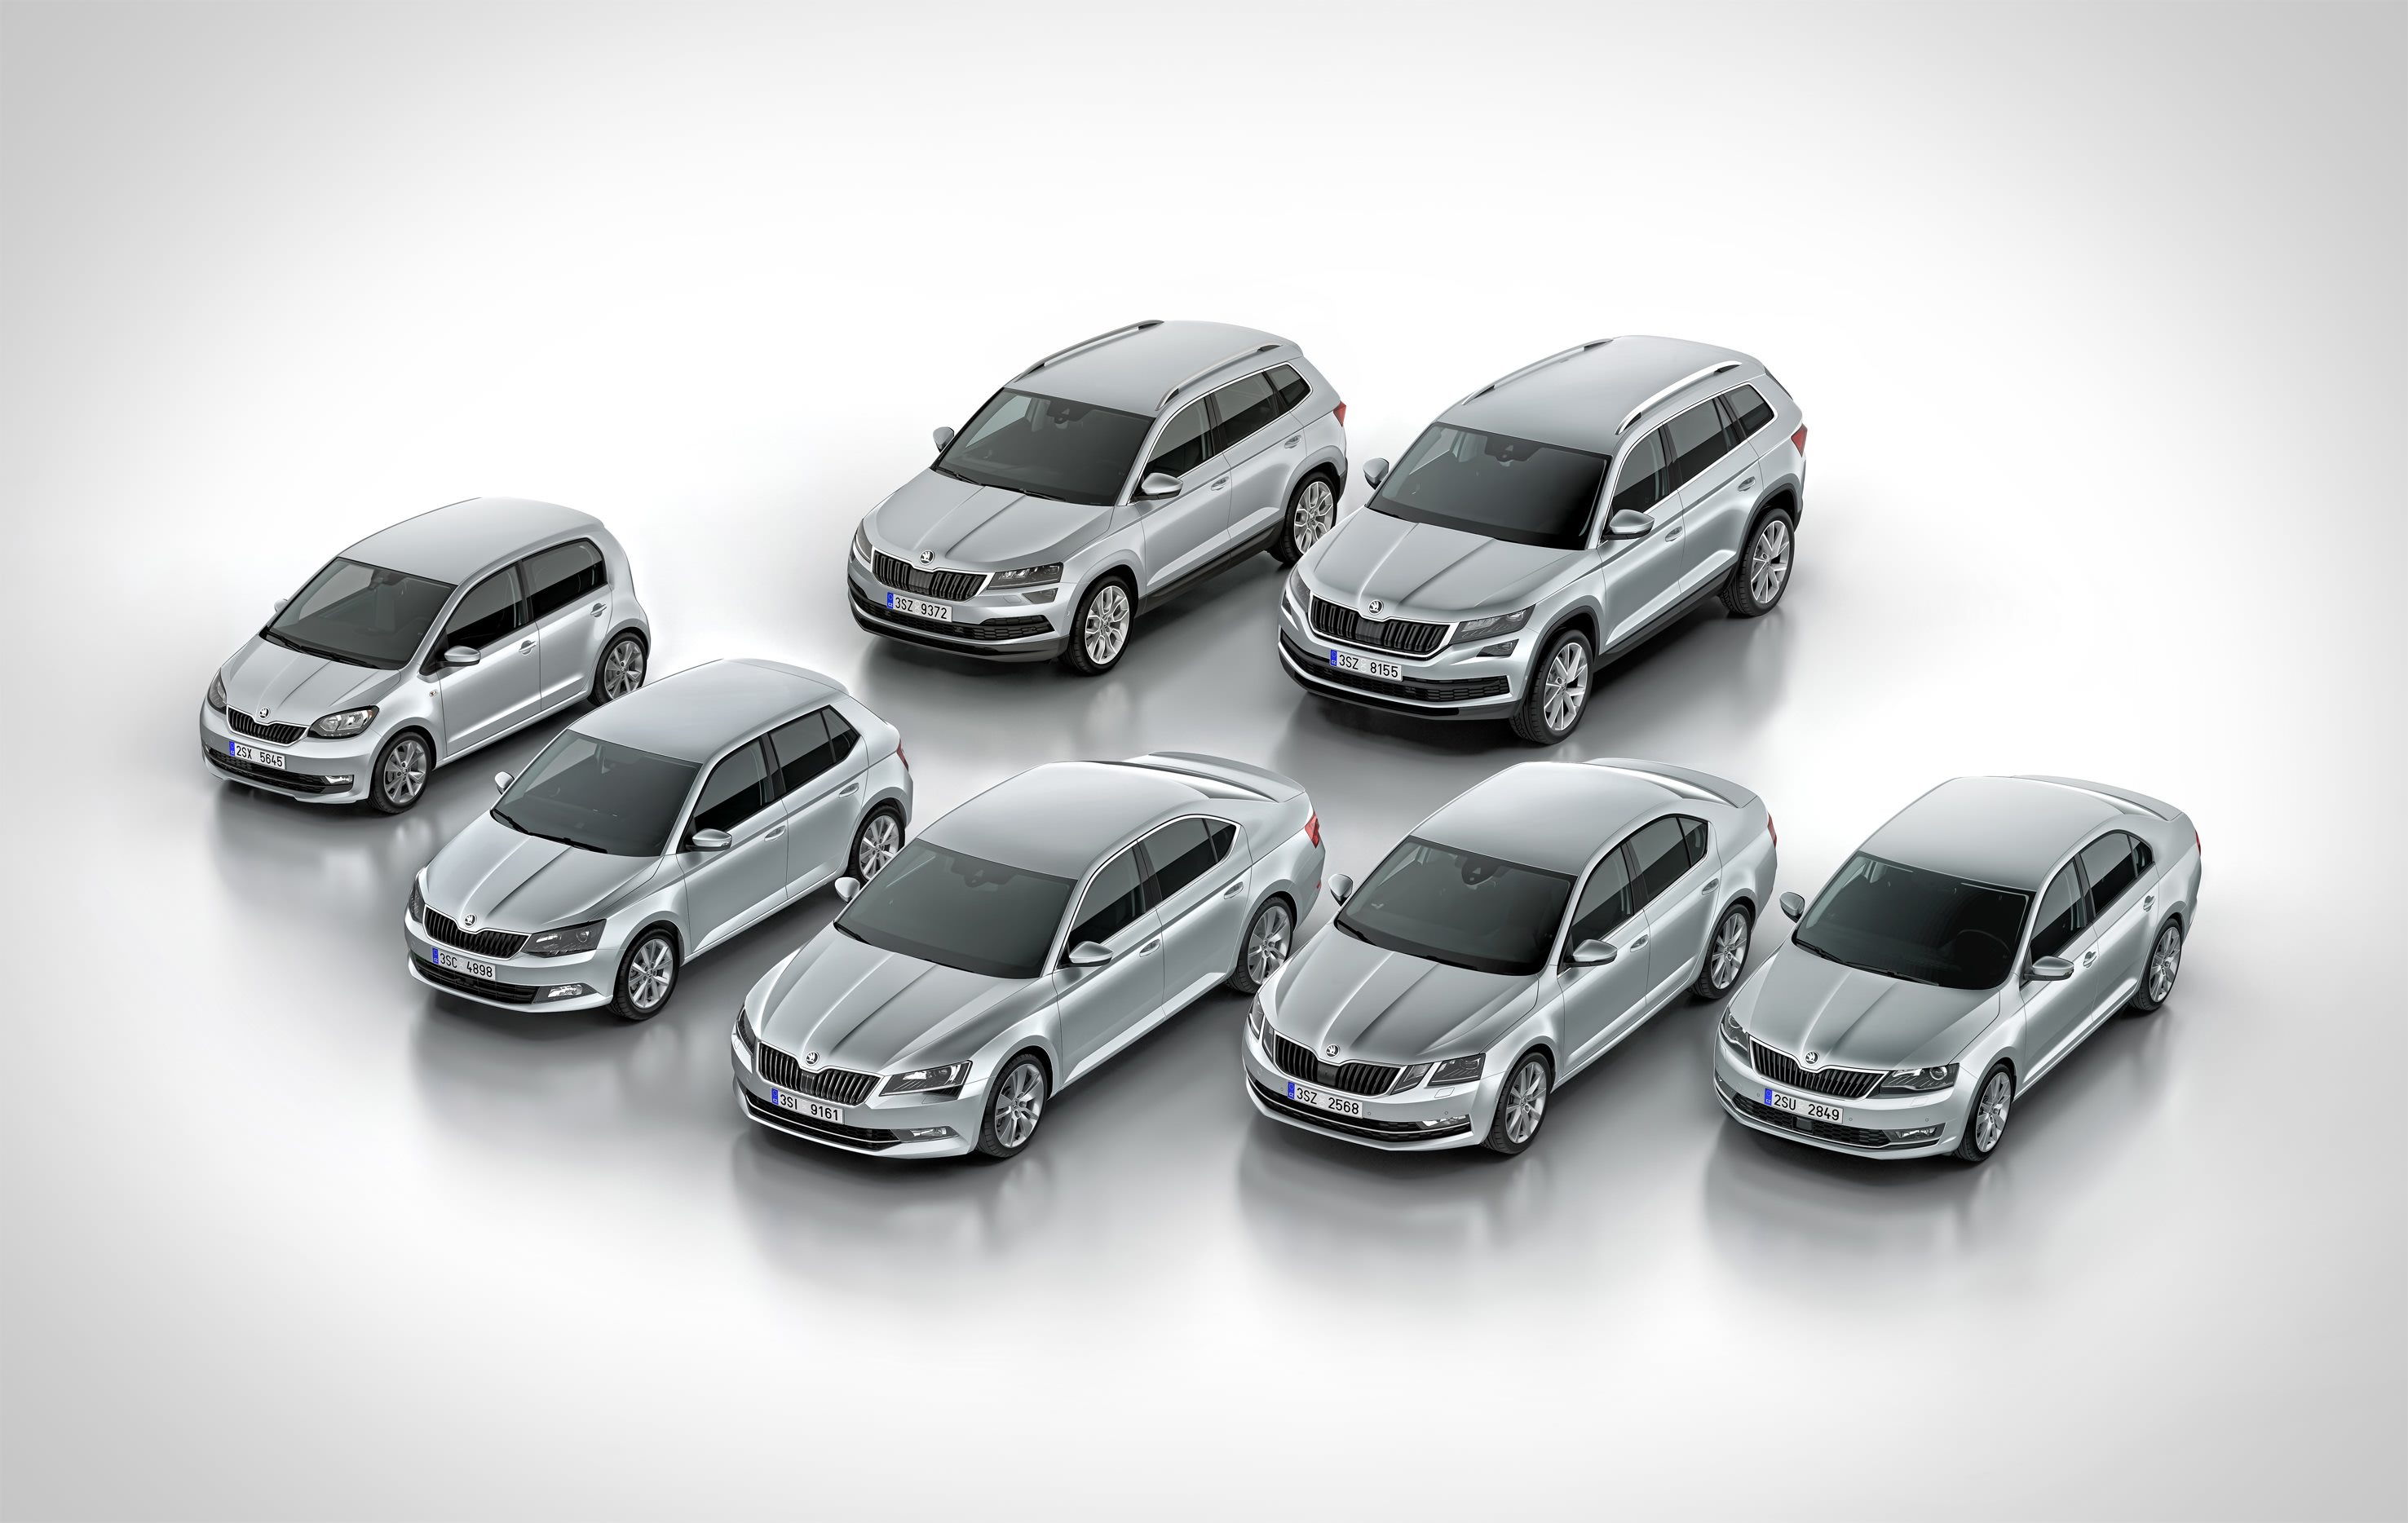 image of several various silver cars